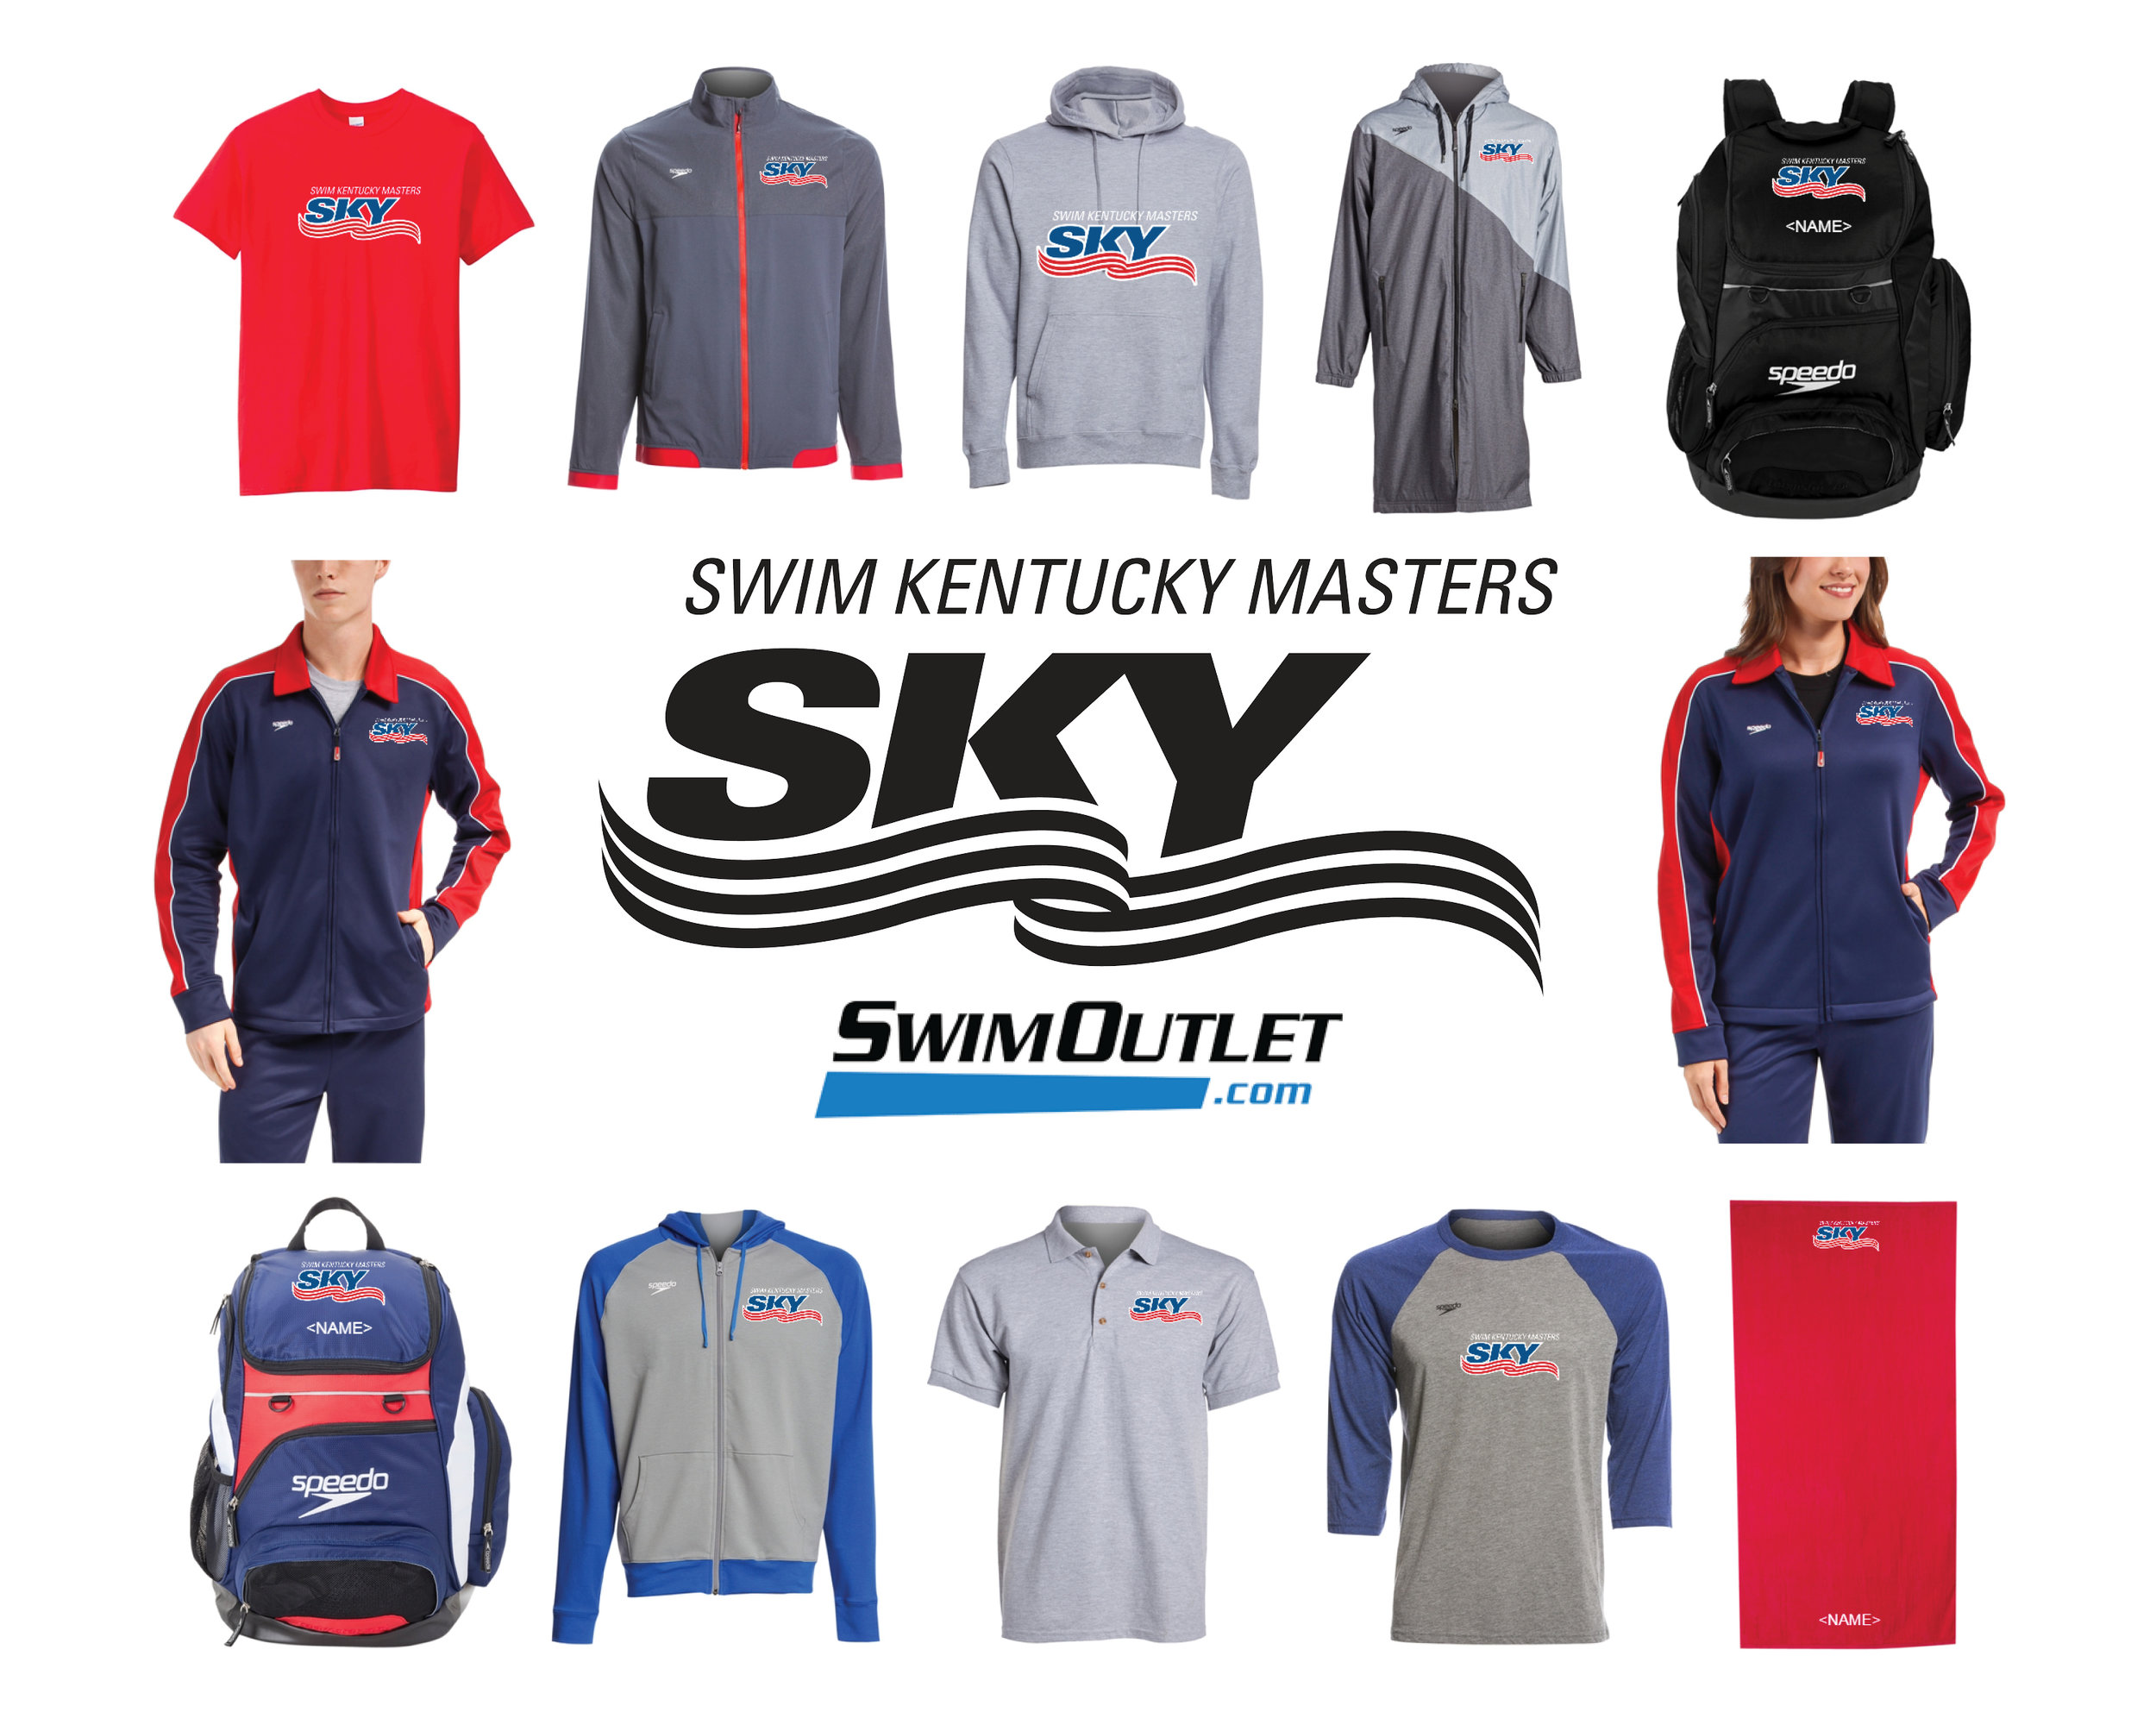 Visit  swimoutlet.com/kentuckymasters  today to get your SKY gear for Nationals!